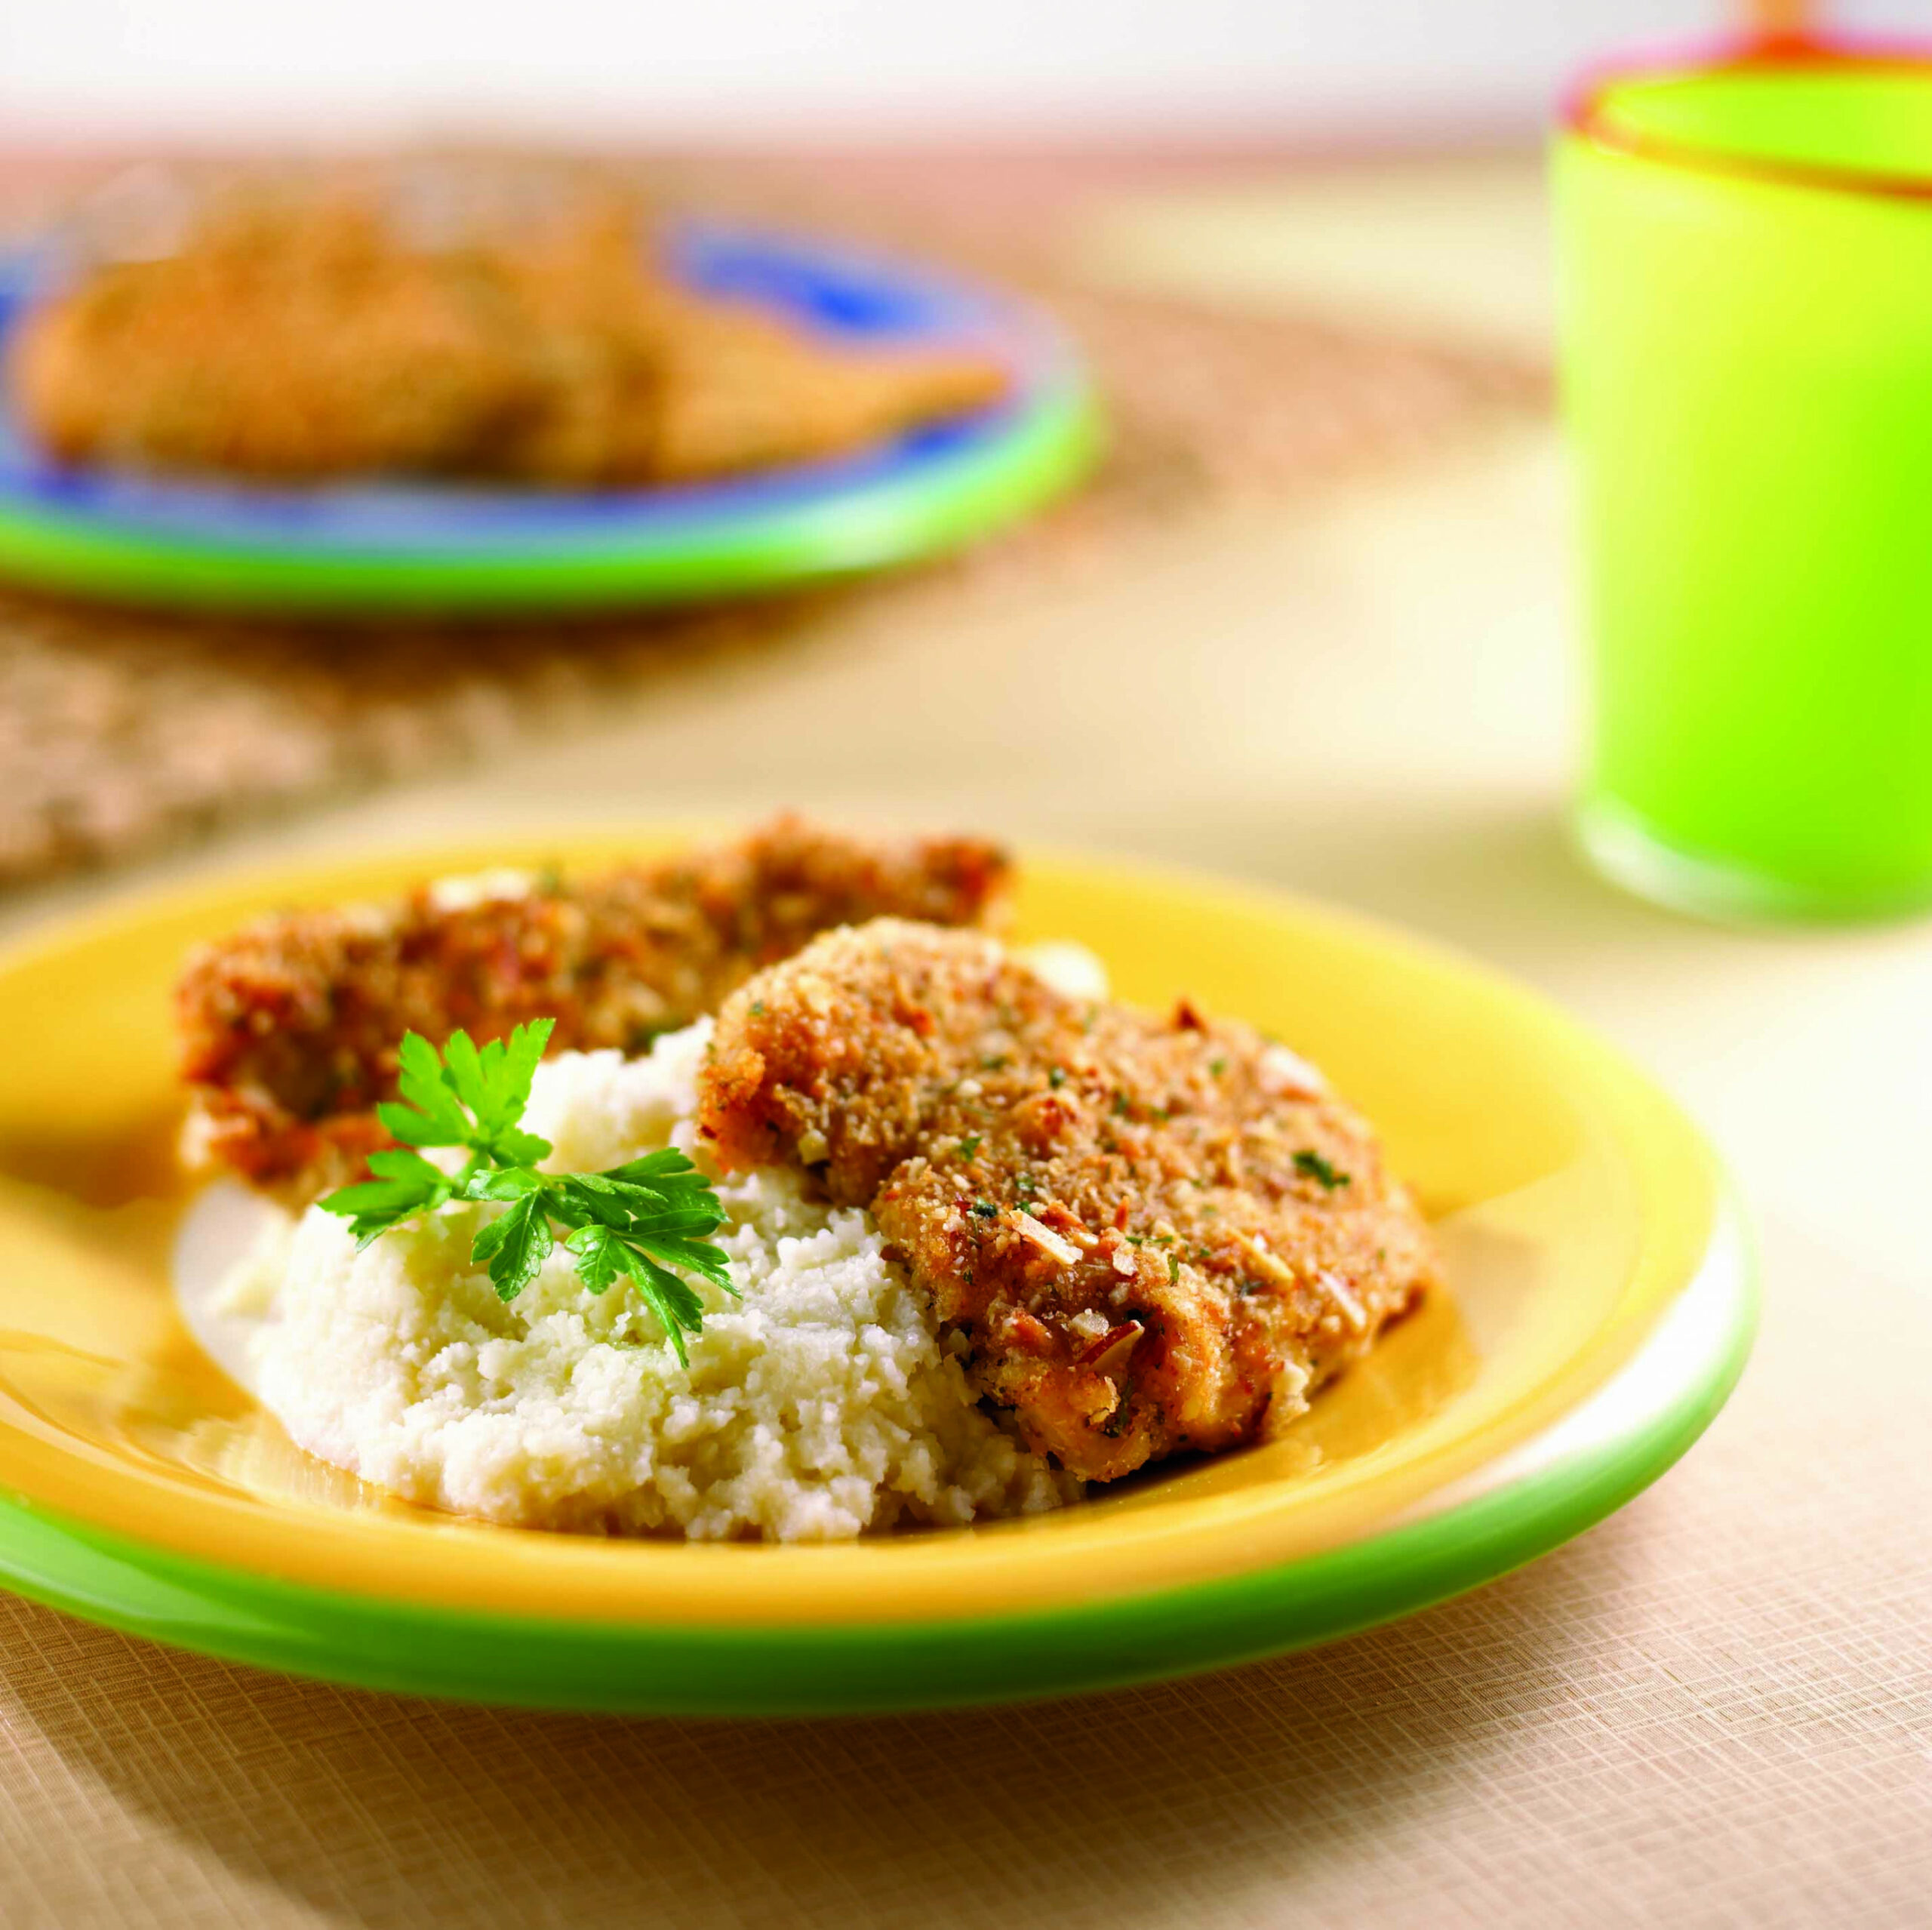 Fried Chicken with Almonds - South Beach Diet Healthy Recipes - recipes to eat healthy